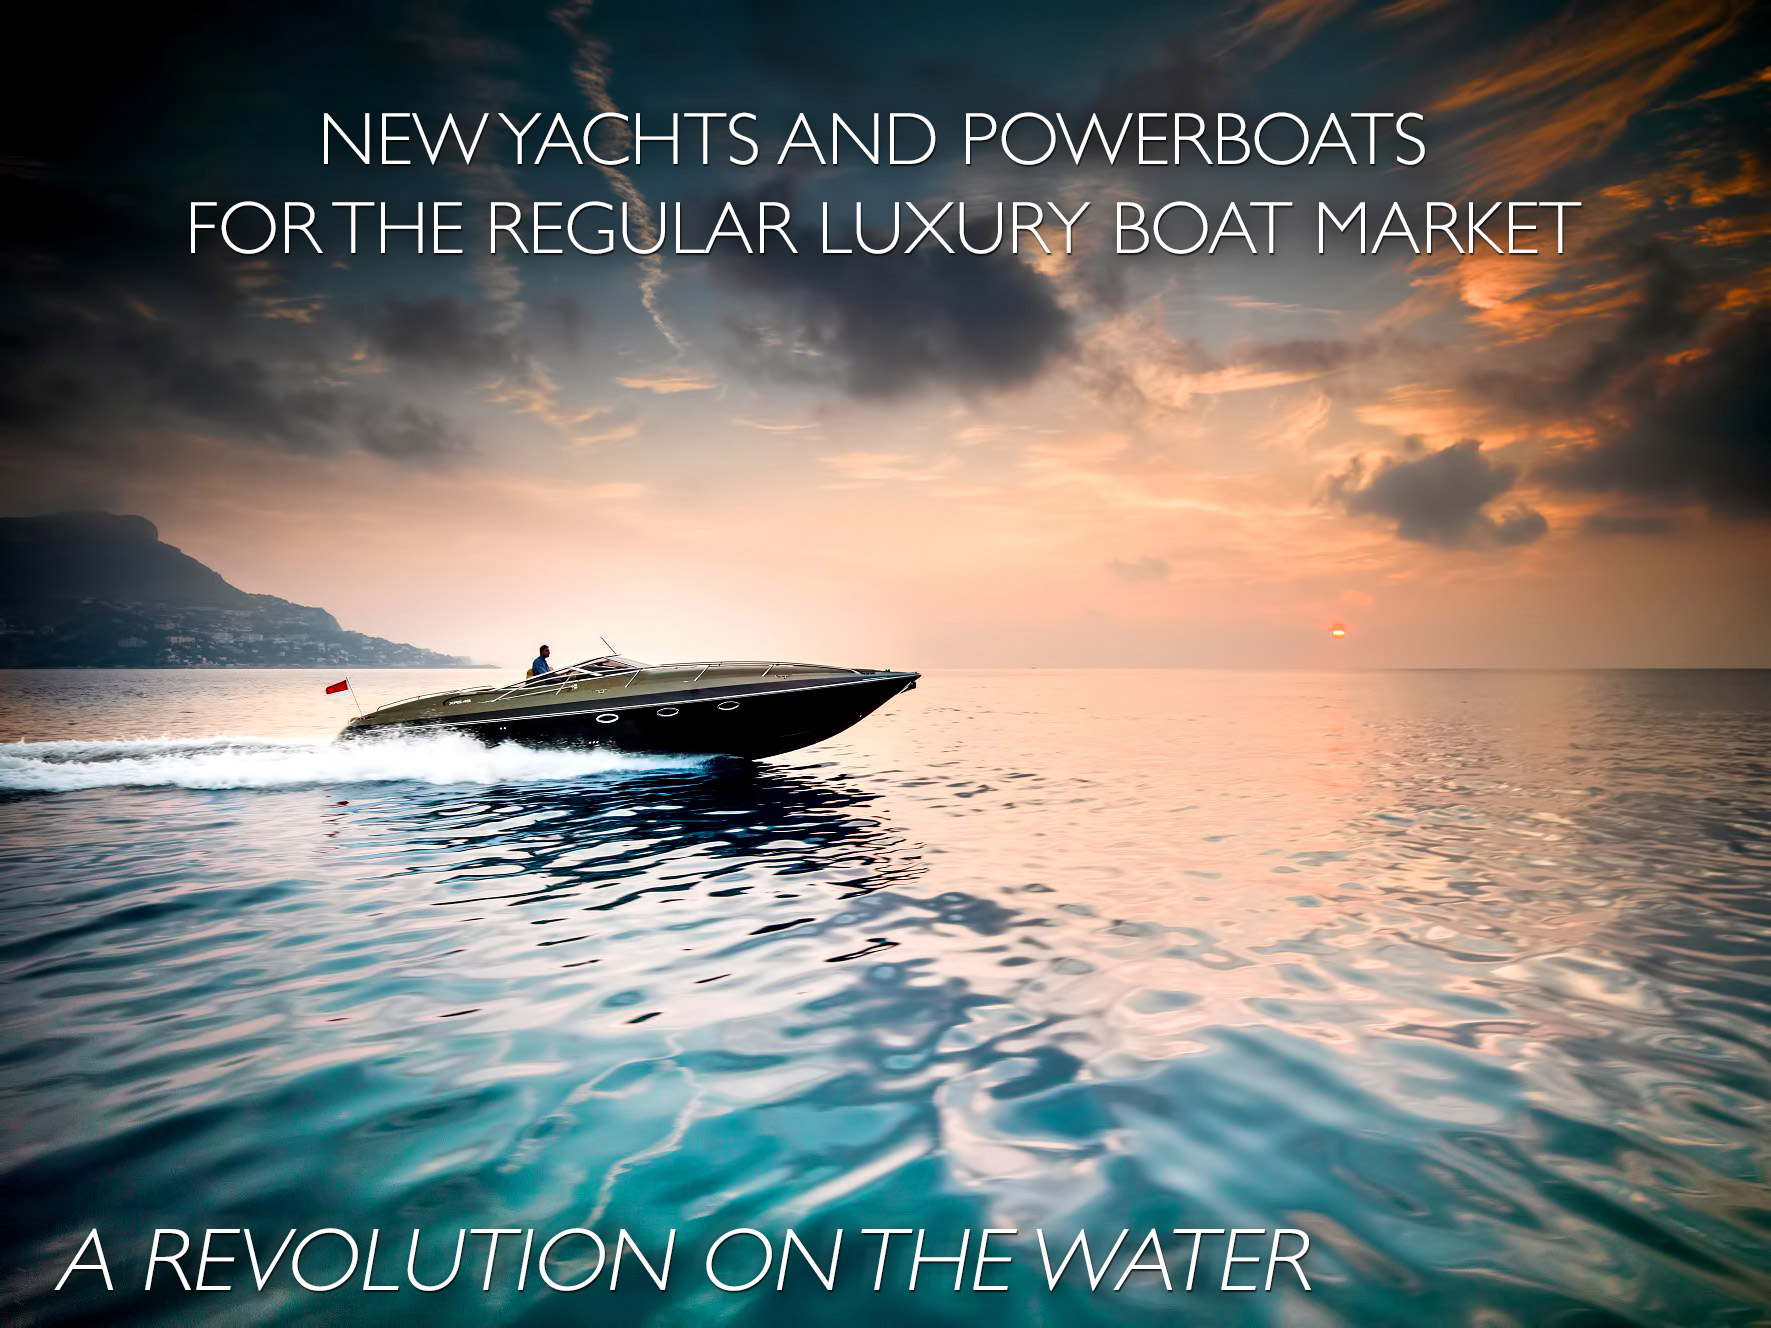 A Revolution on the Water - New Yachts and Powerboats for the Regular Luxury Boat Market